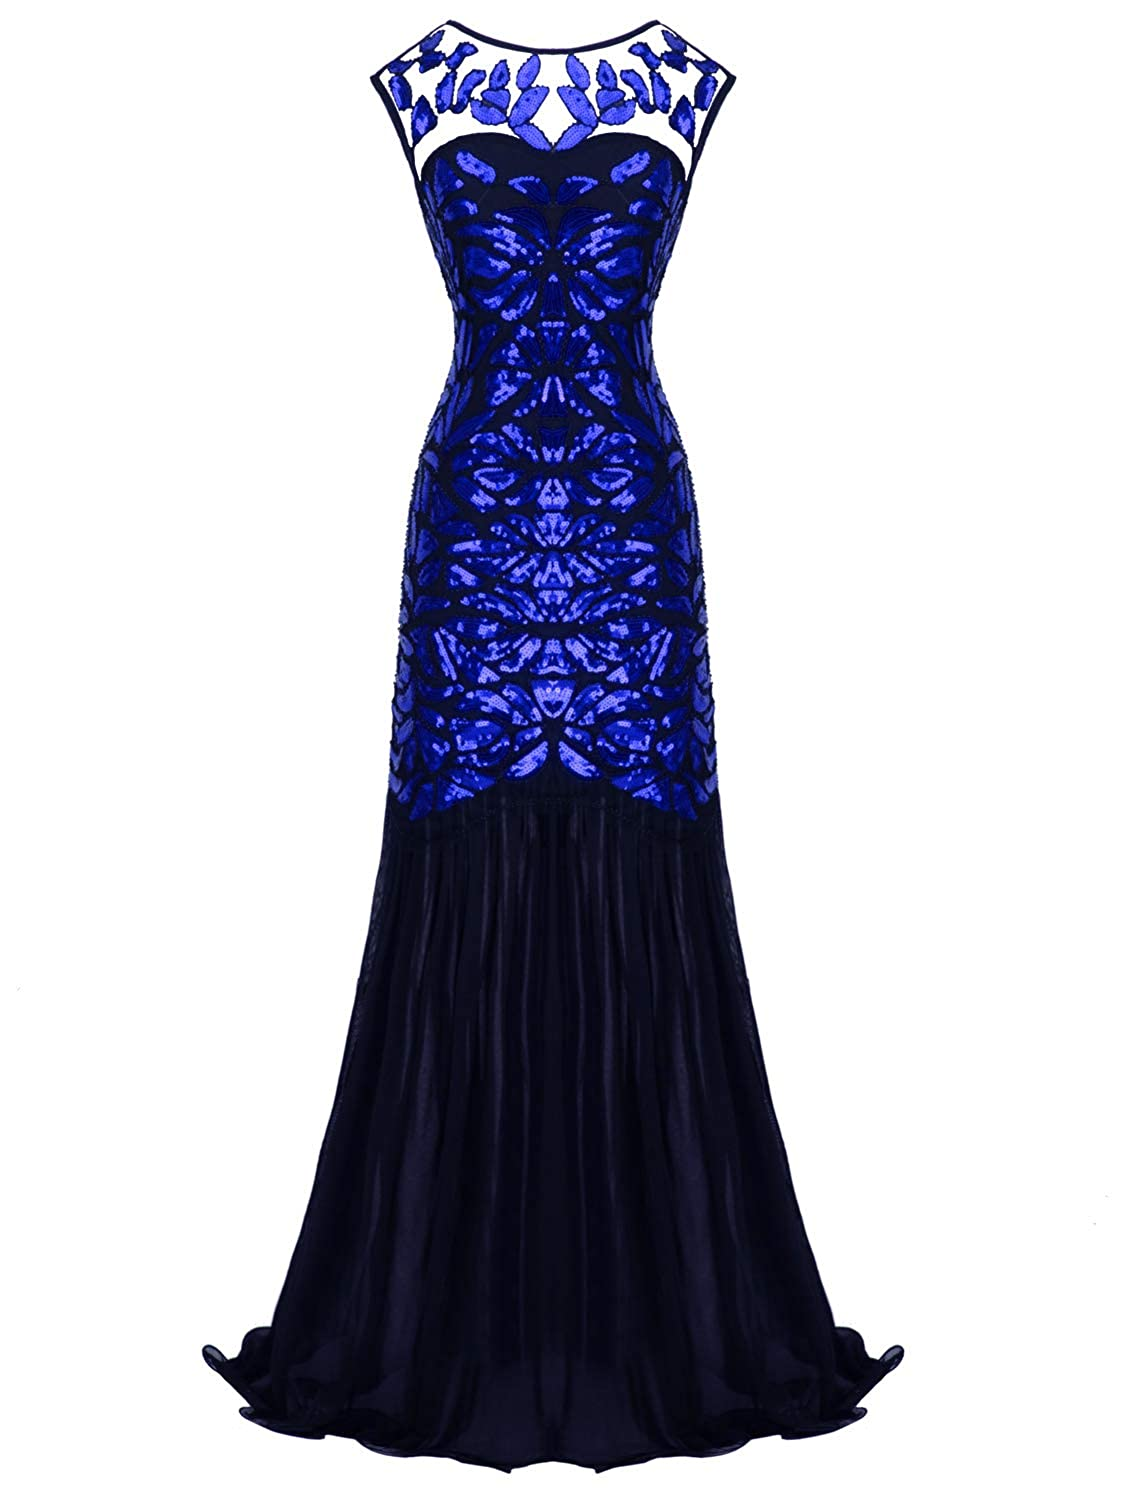 Black+royal bluee FAIRY COUPLE 1920s FloorLength VBack Sequined Embellished Prom Evening Dress D20S004